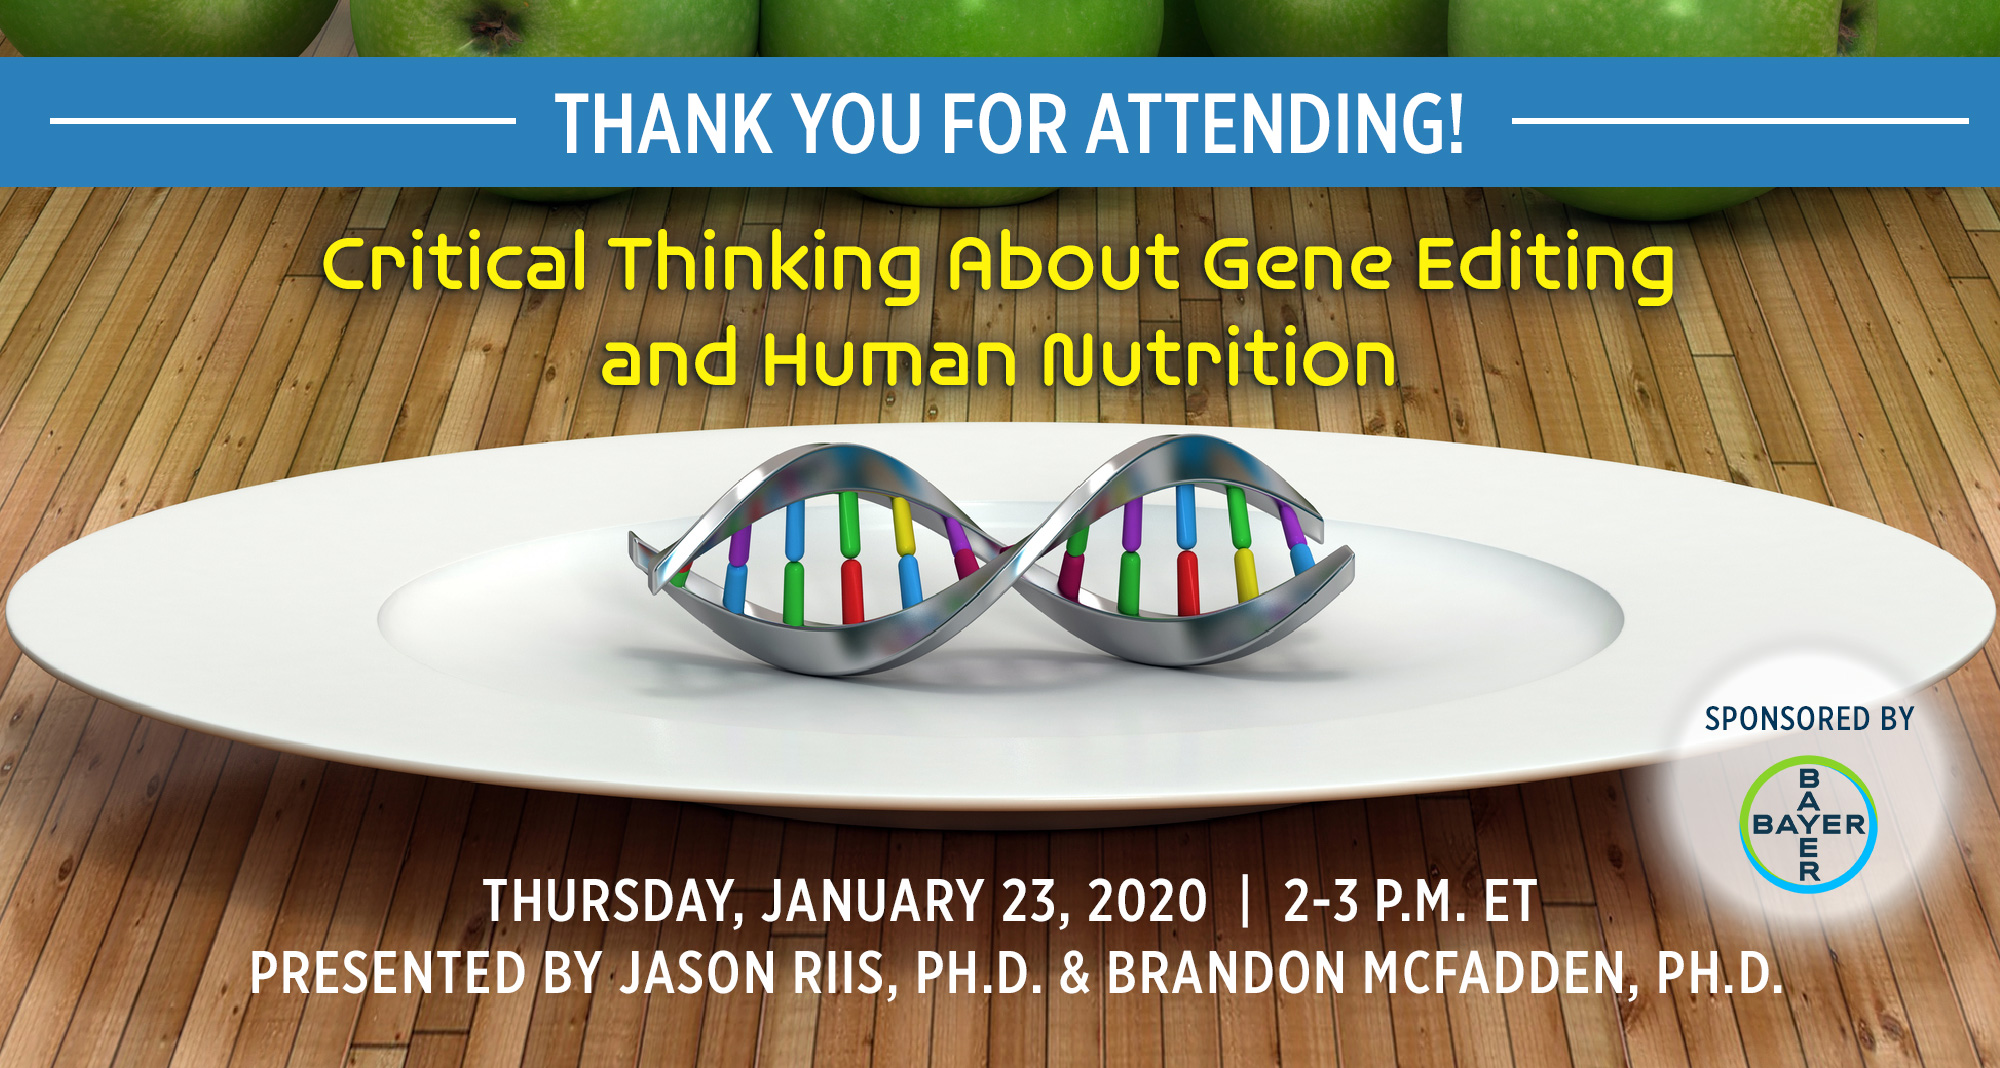 Thank You For Attending! Critical Thinking About Gene Editing and Human Nutrition | Presented by Jason Riis, PH.D. & Brandon McFadden, PH.D.| Thursday, January 23, 2020, from 2-3 P.M. ET | Earn 1 CEU Free